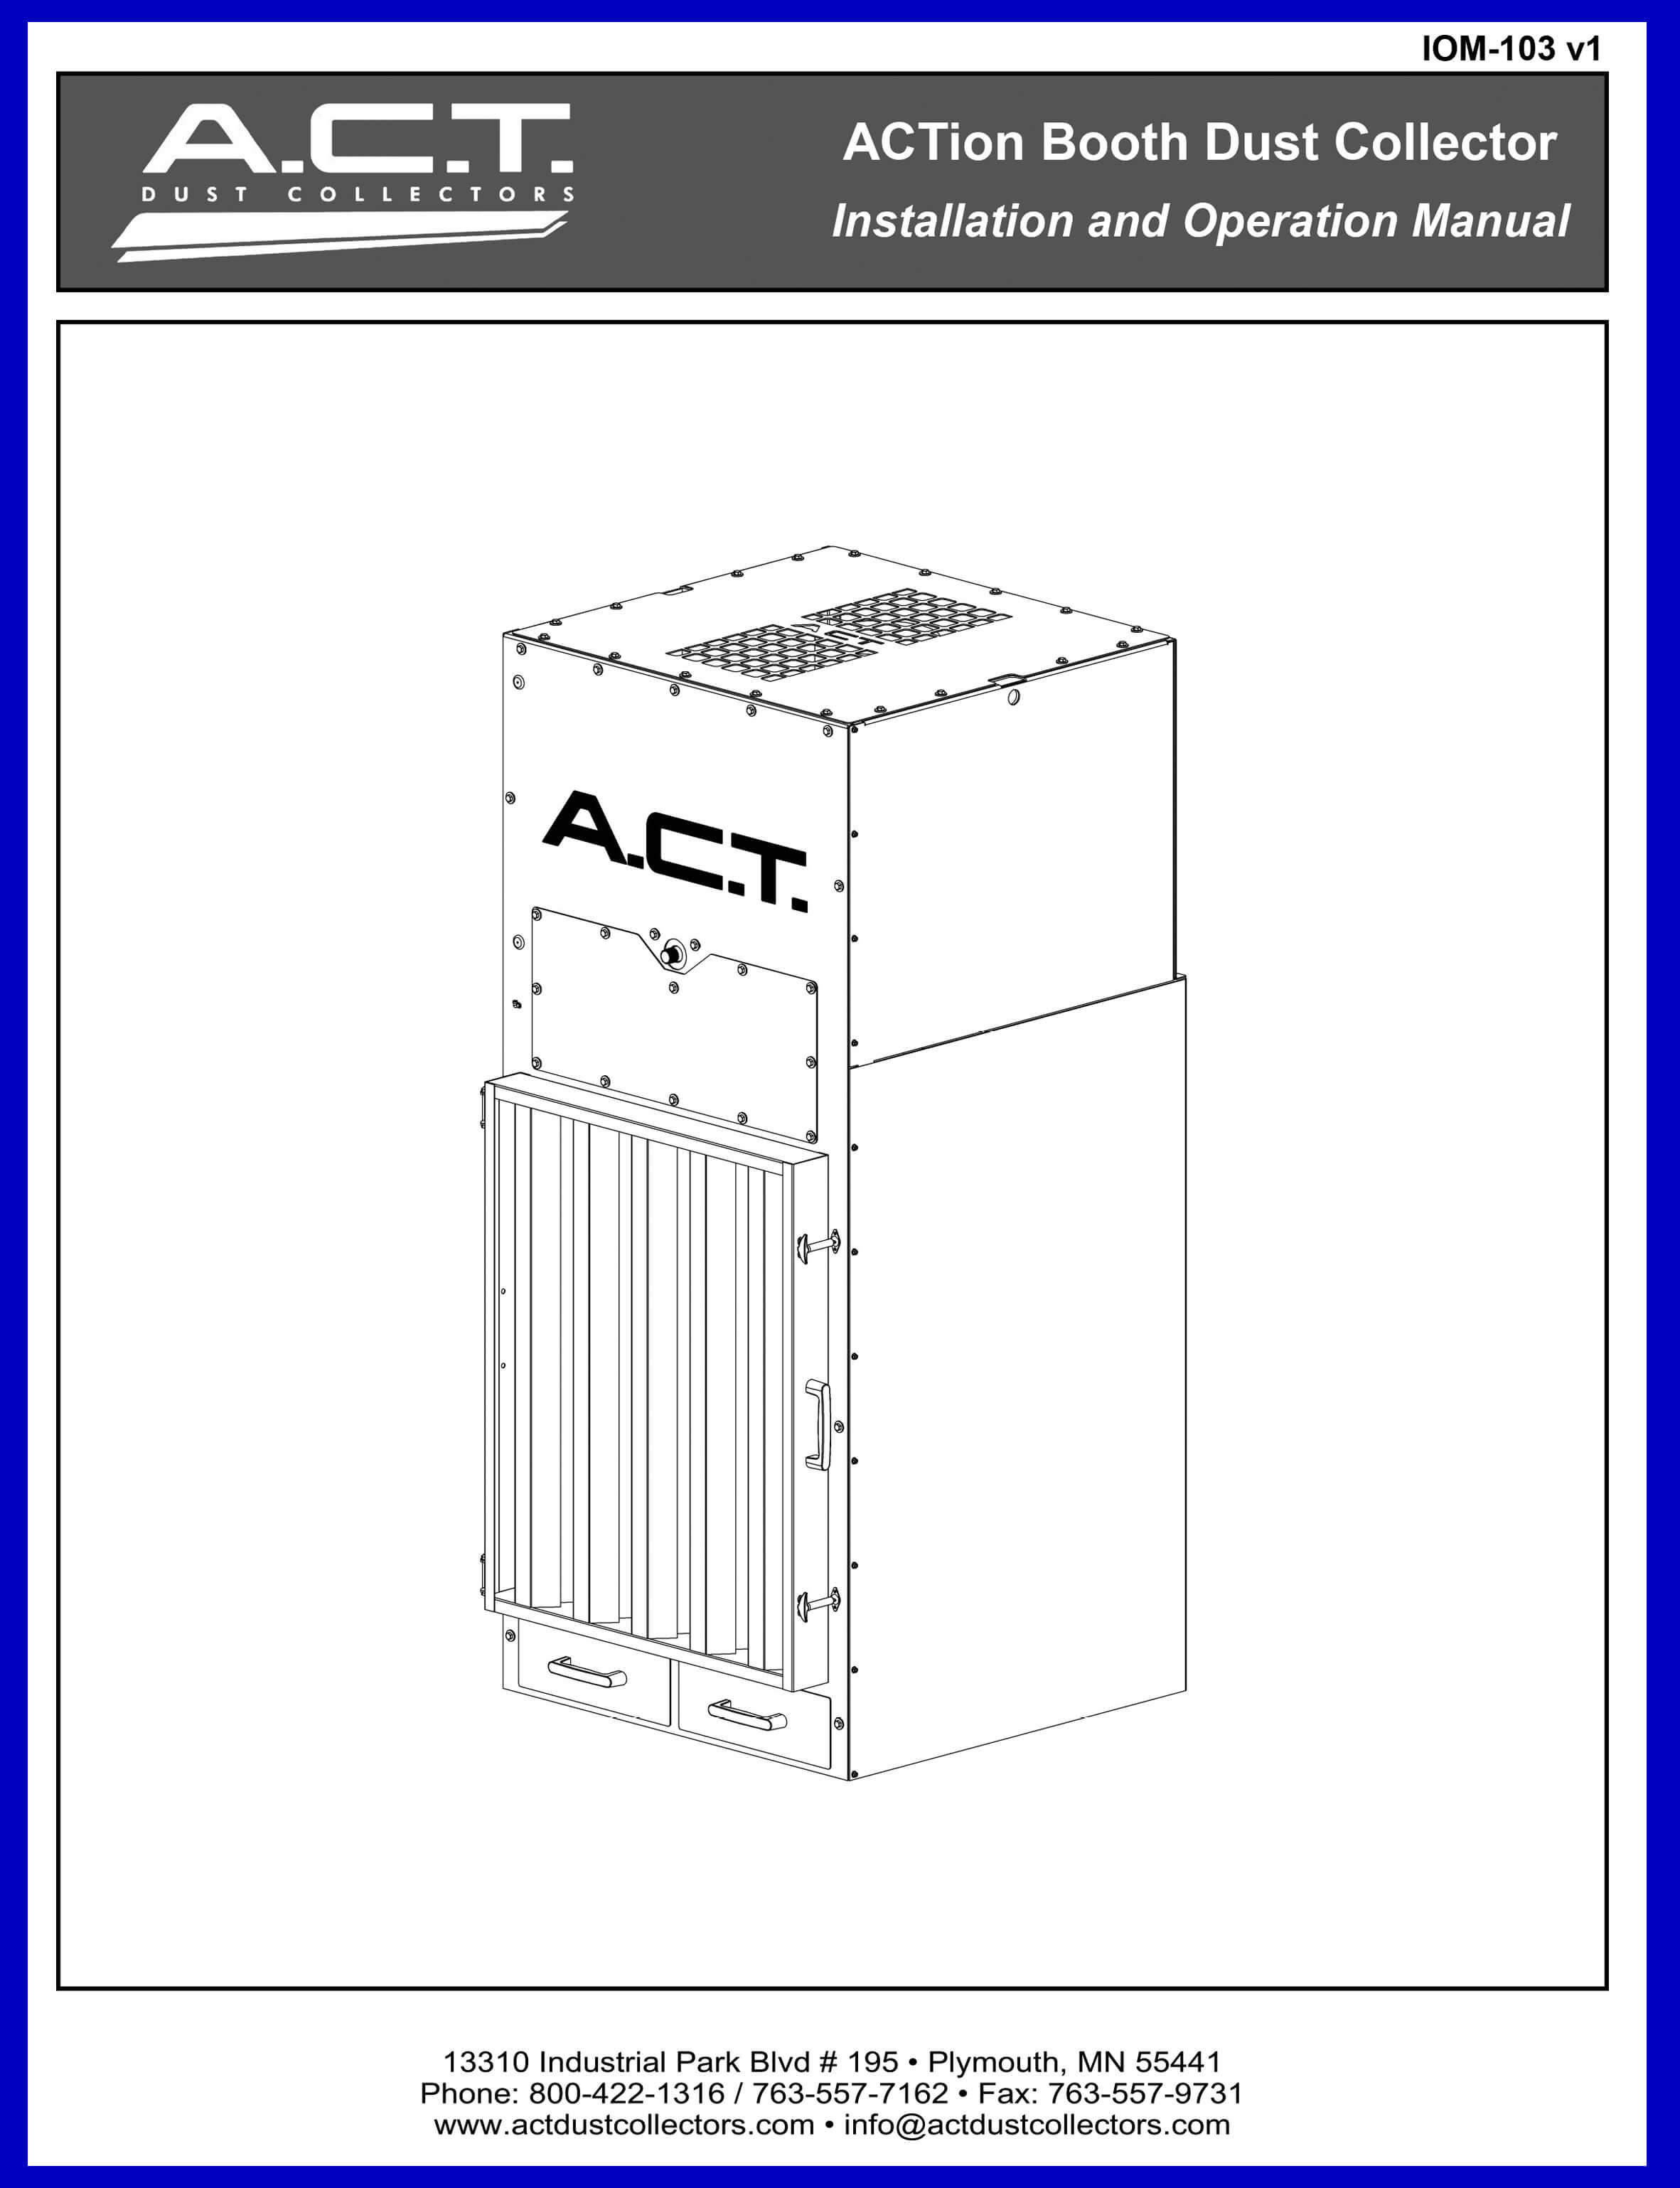 ACT ACTion Booth Collectors Manual Cover